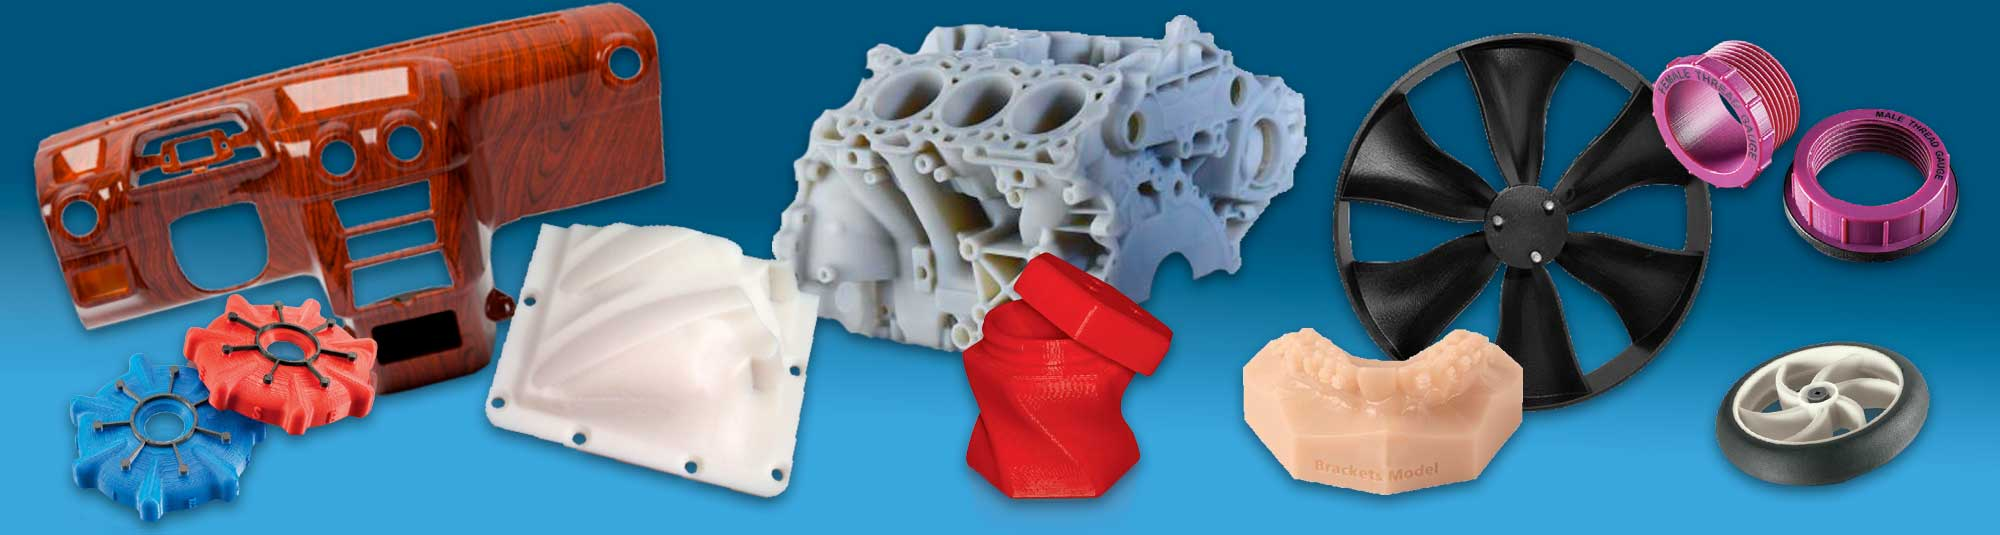 3D Printing & Additive Manufacturing